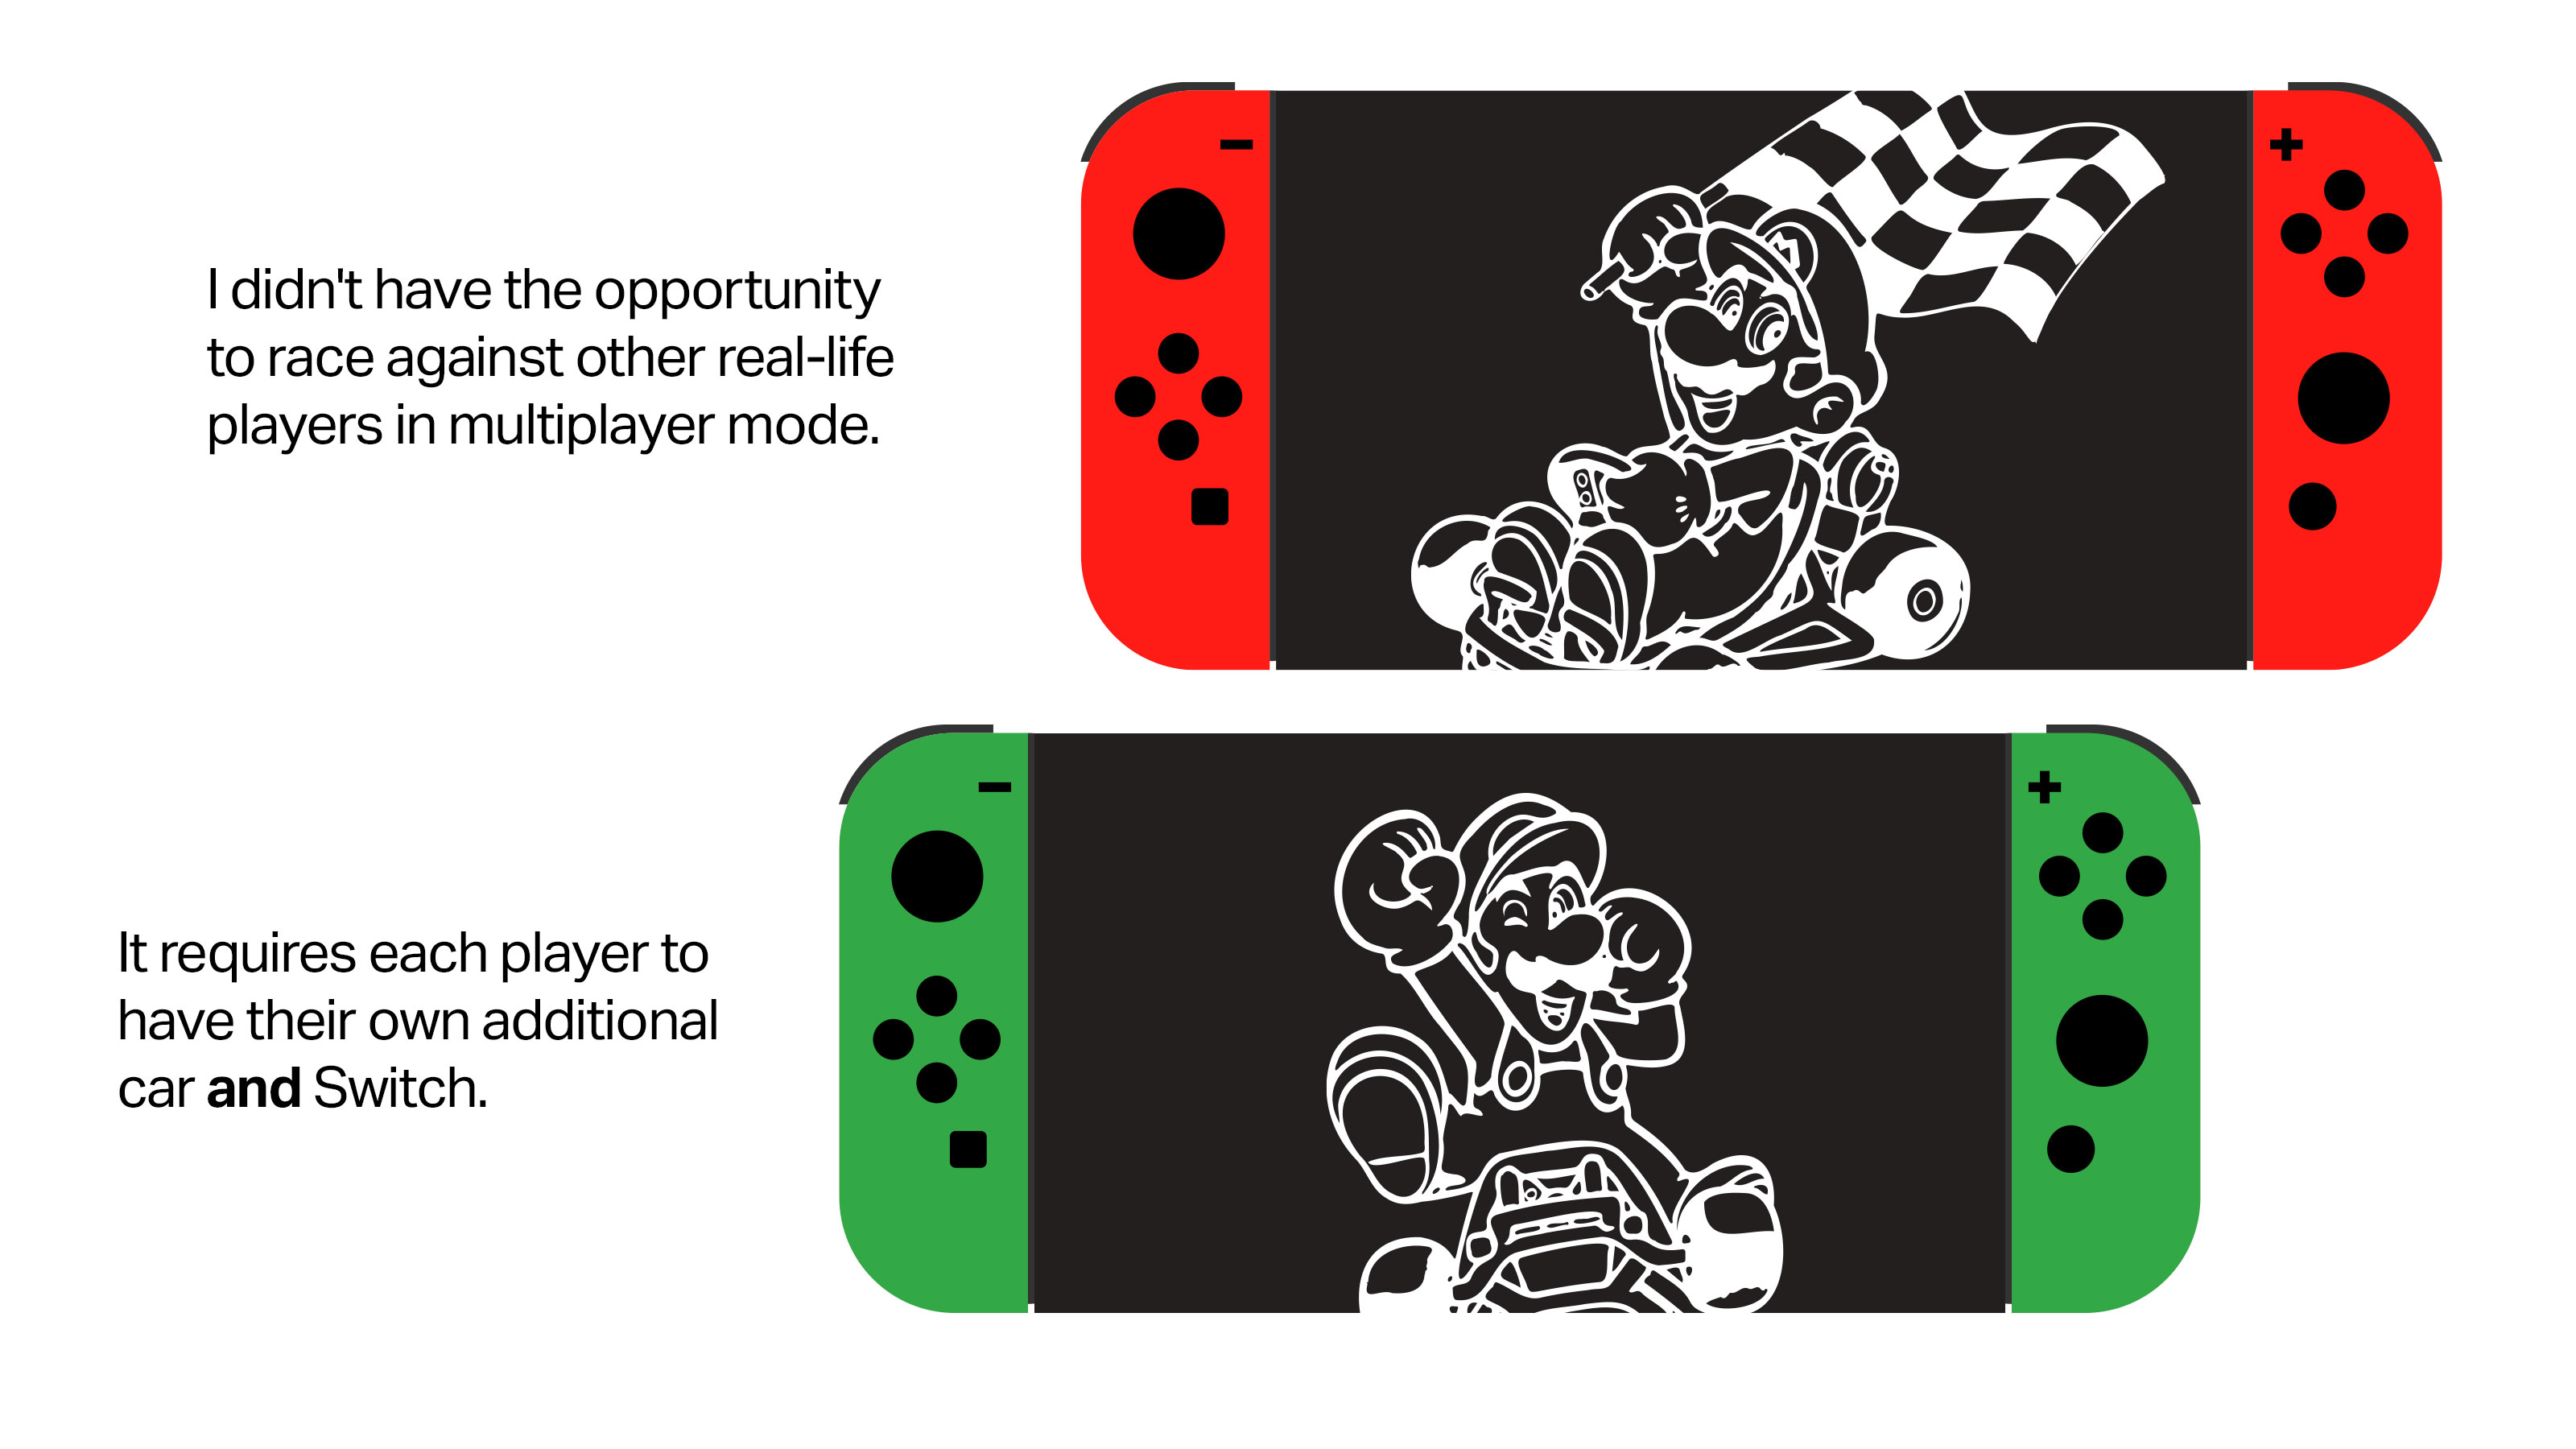 Text: I didn't have the opportunity to race against other real-life players in multiplayer mode. It requires each player to have their own additional car *and* Switch. [Image: Mario and Luigi racers, two Nintendo Switches]